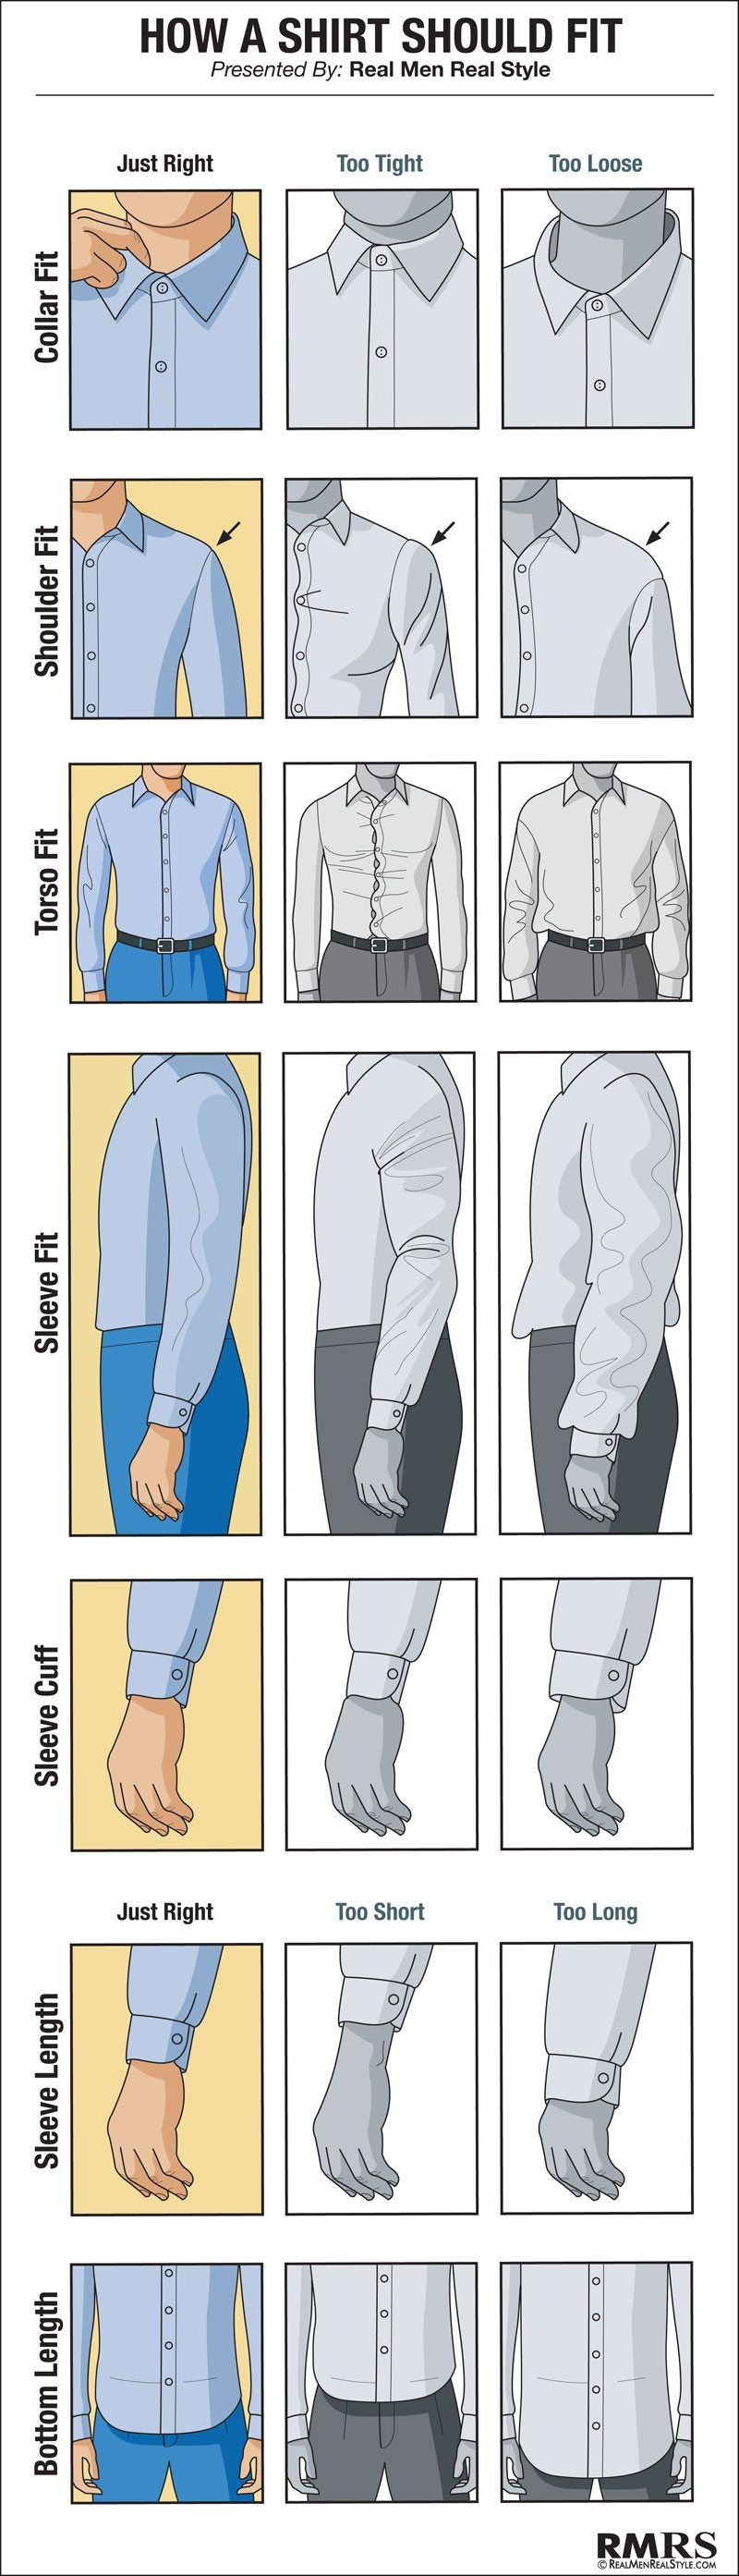 How men's dress shirts should fit